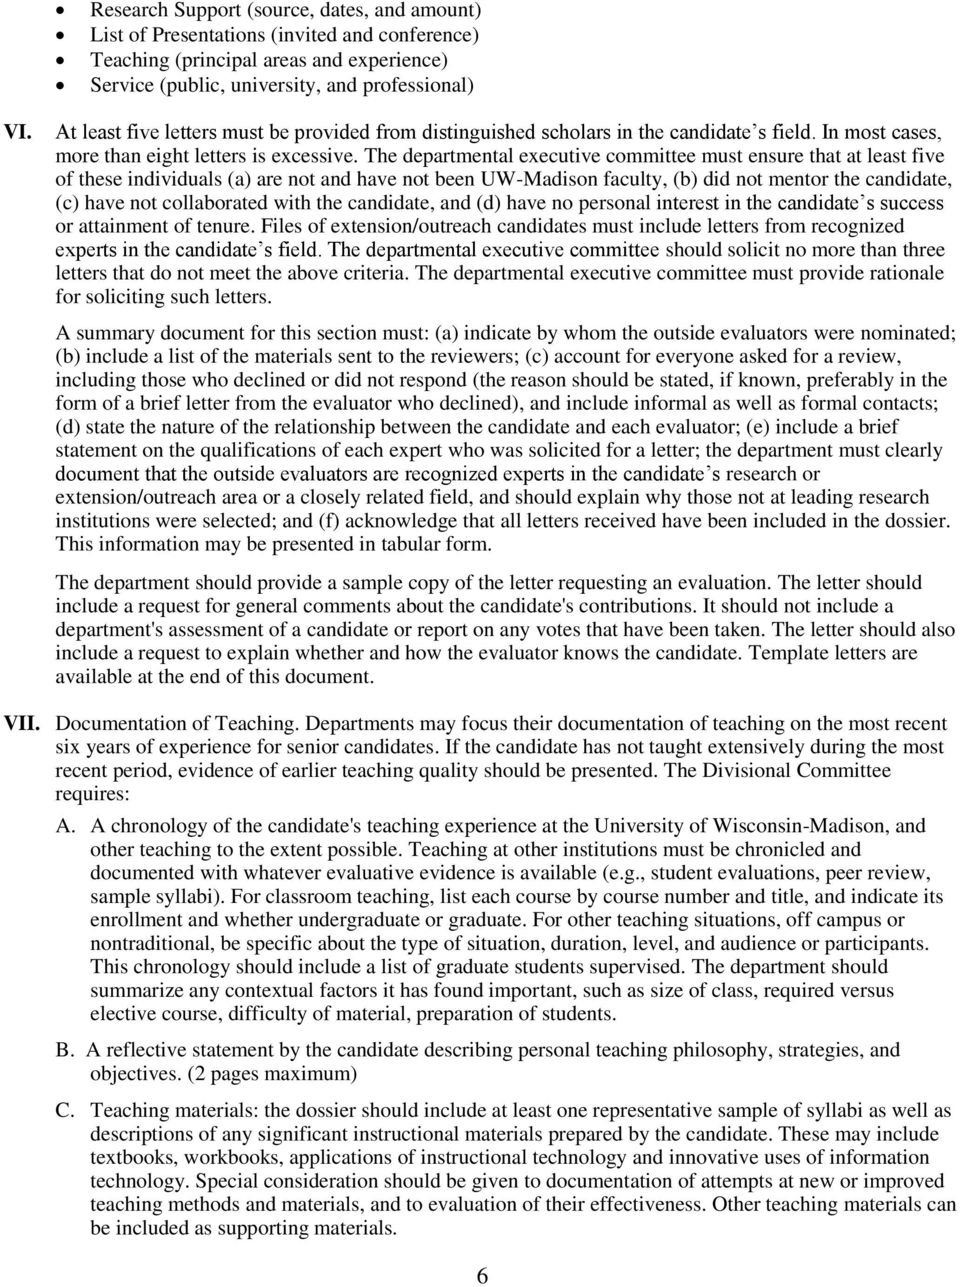 The departmental executive committee must ensure that at least five of these individuals (a) are not and have not been UW-Madison faculty, (b) did not mentor the candidate, (c) have not collaborated